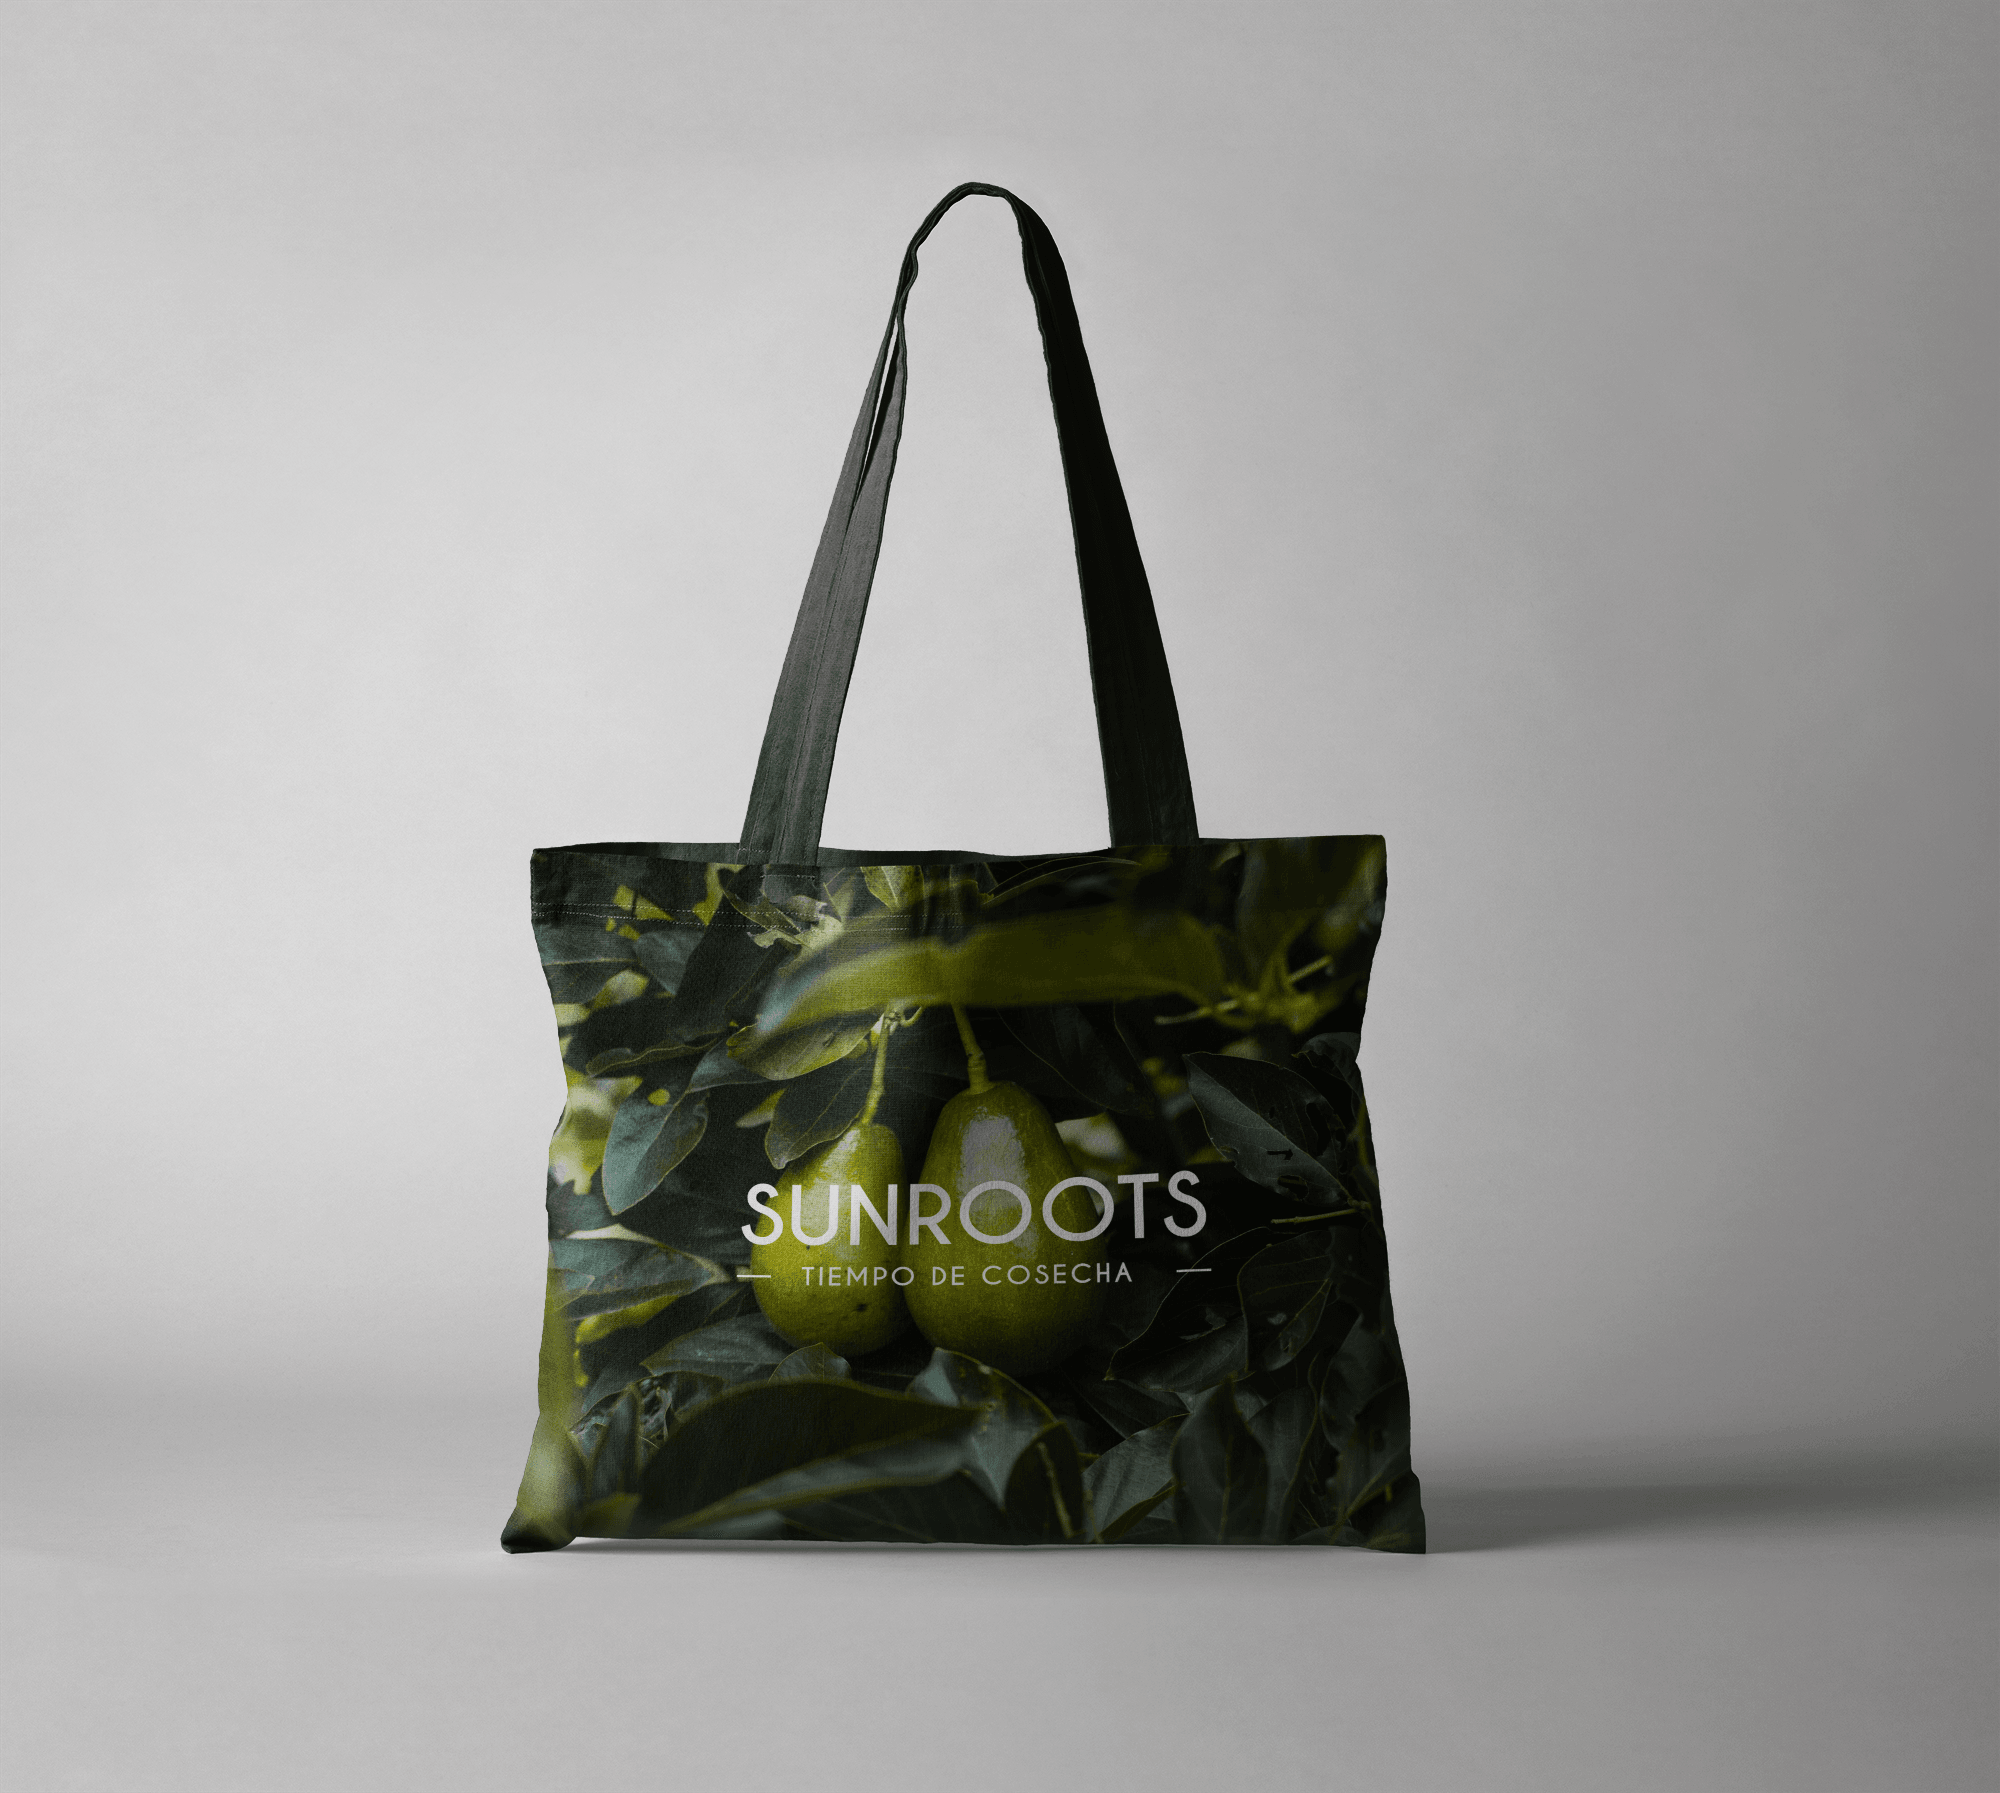 Tote-Bag-sunroots-avocado-yoenpaperland-compressor